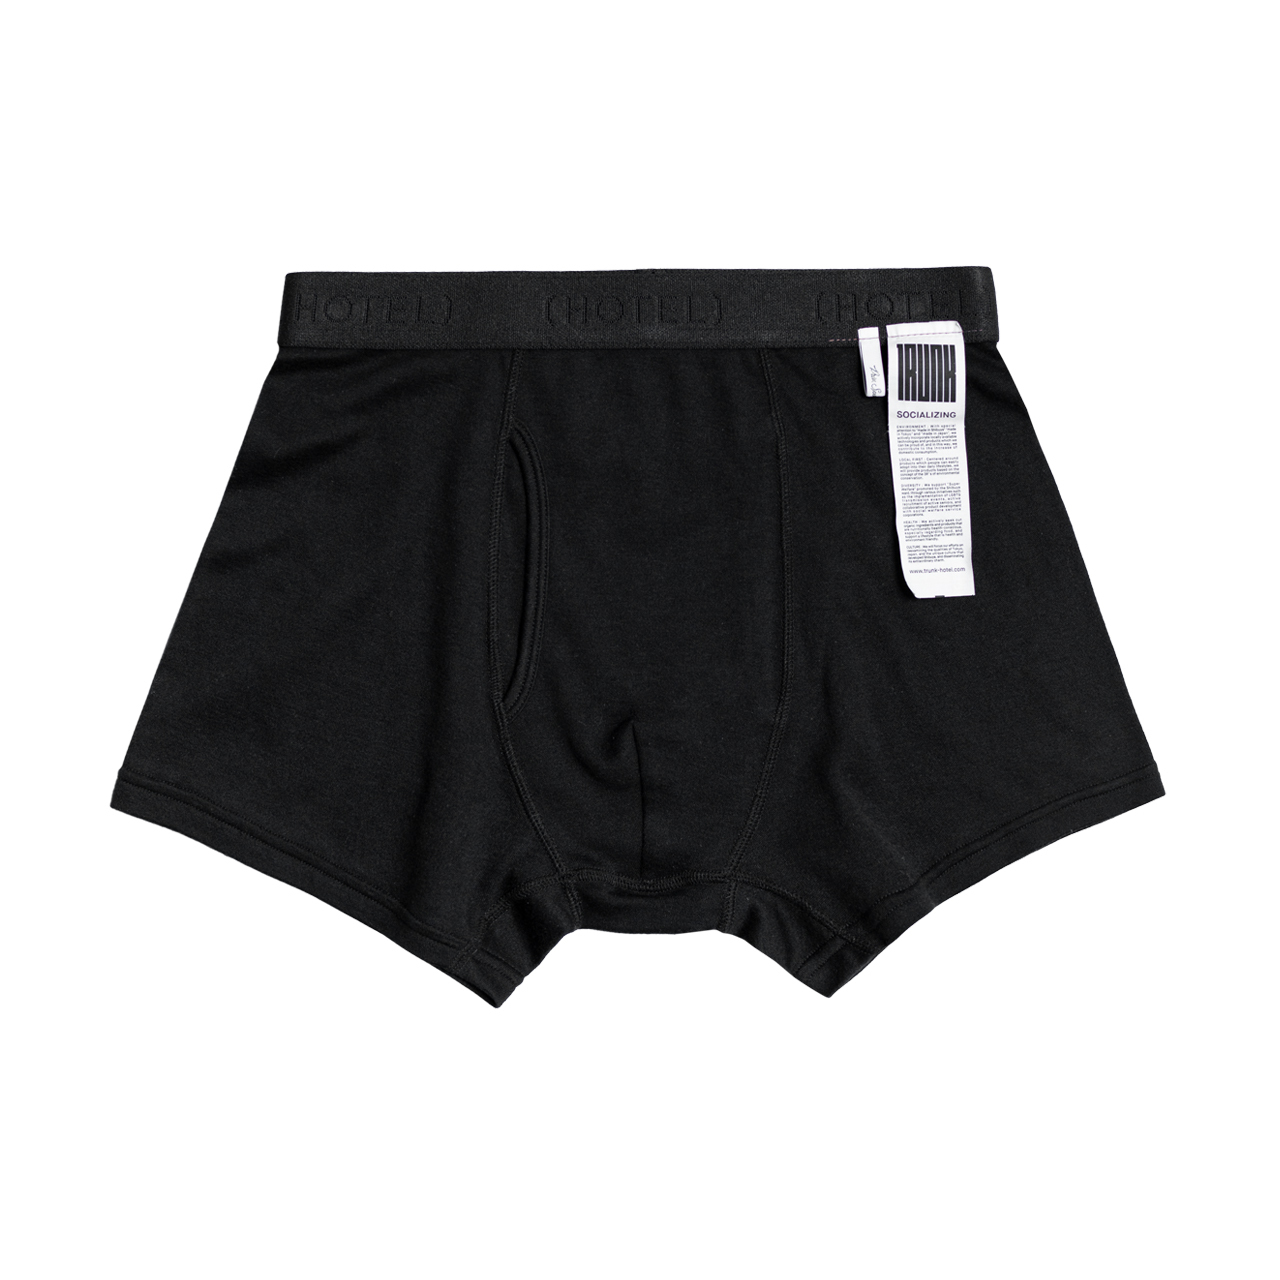 TRUNK × PSC Kainen Cotton Mens Boxers